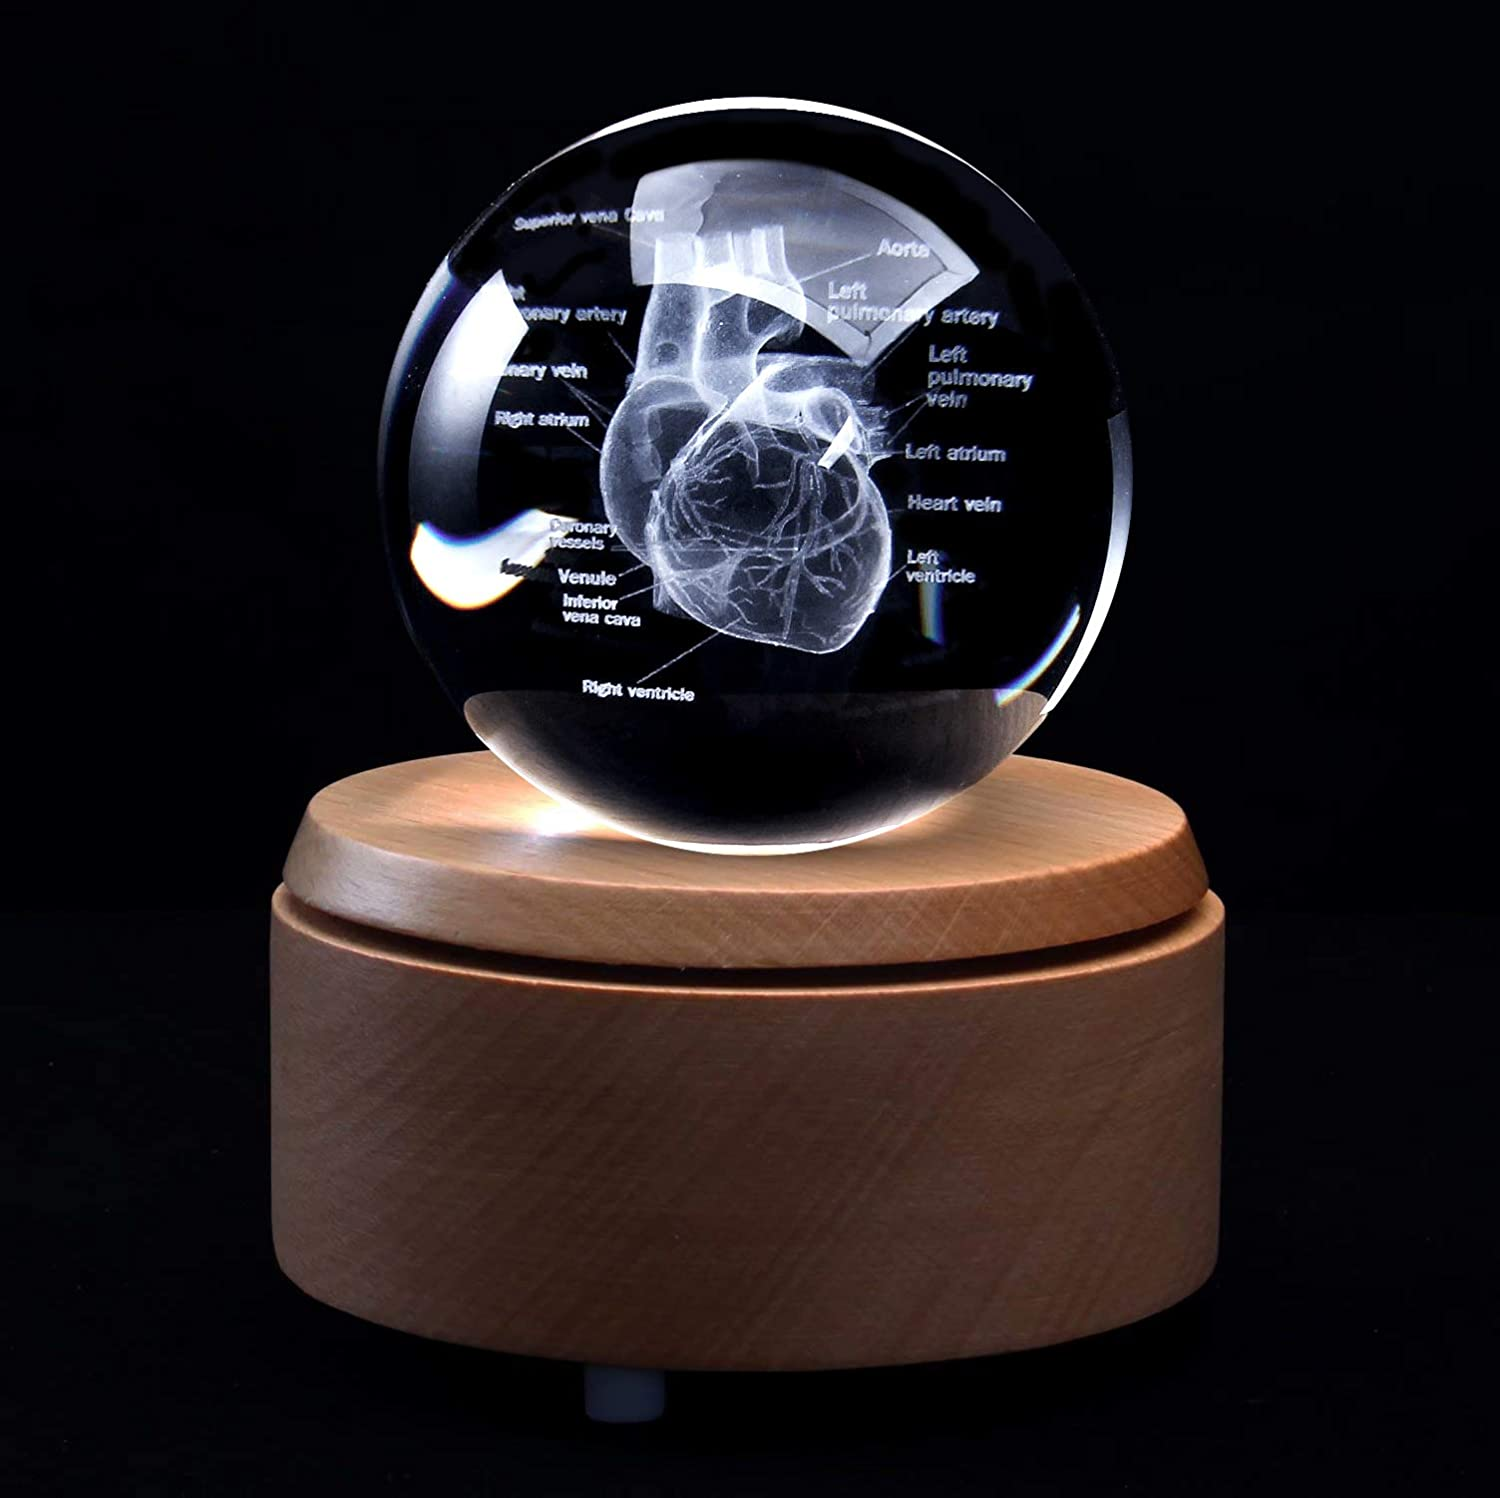 XINDAM 3D Human Heart with Labels Anatomical Model Paperweight(Laser Etched) in Crystal Glass Ball Science Gift (Included LED Base)